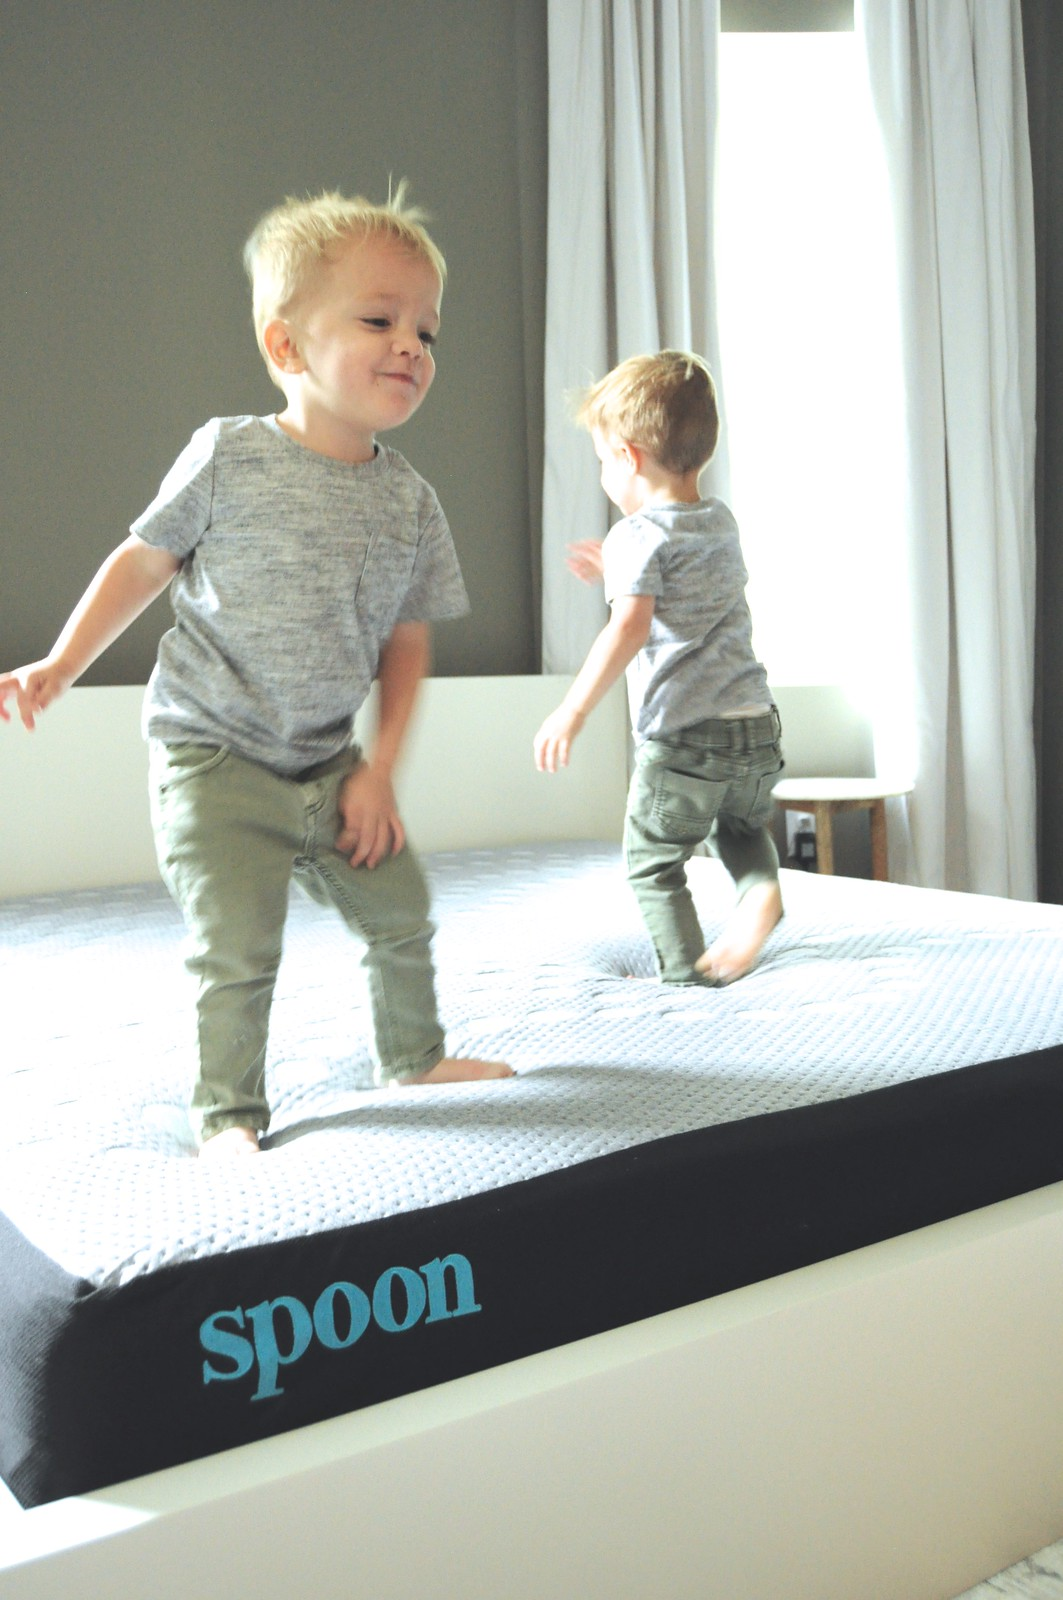 Spoon Sleep Bed